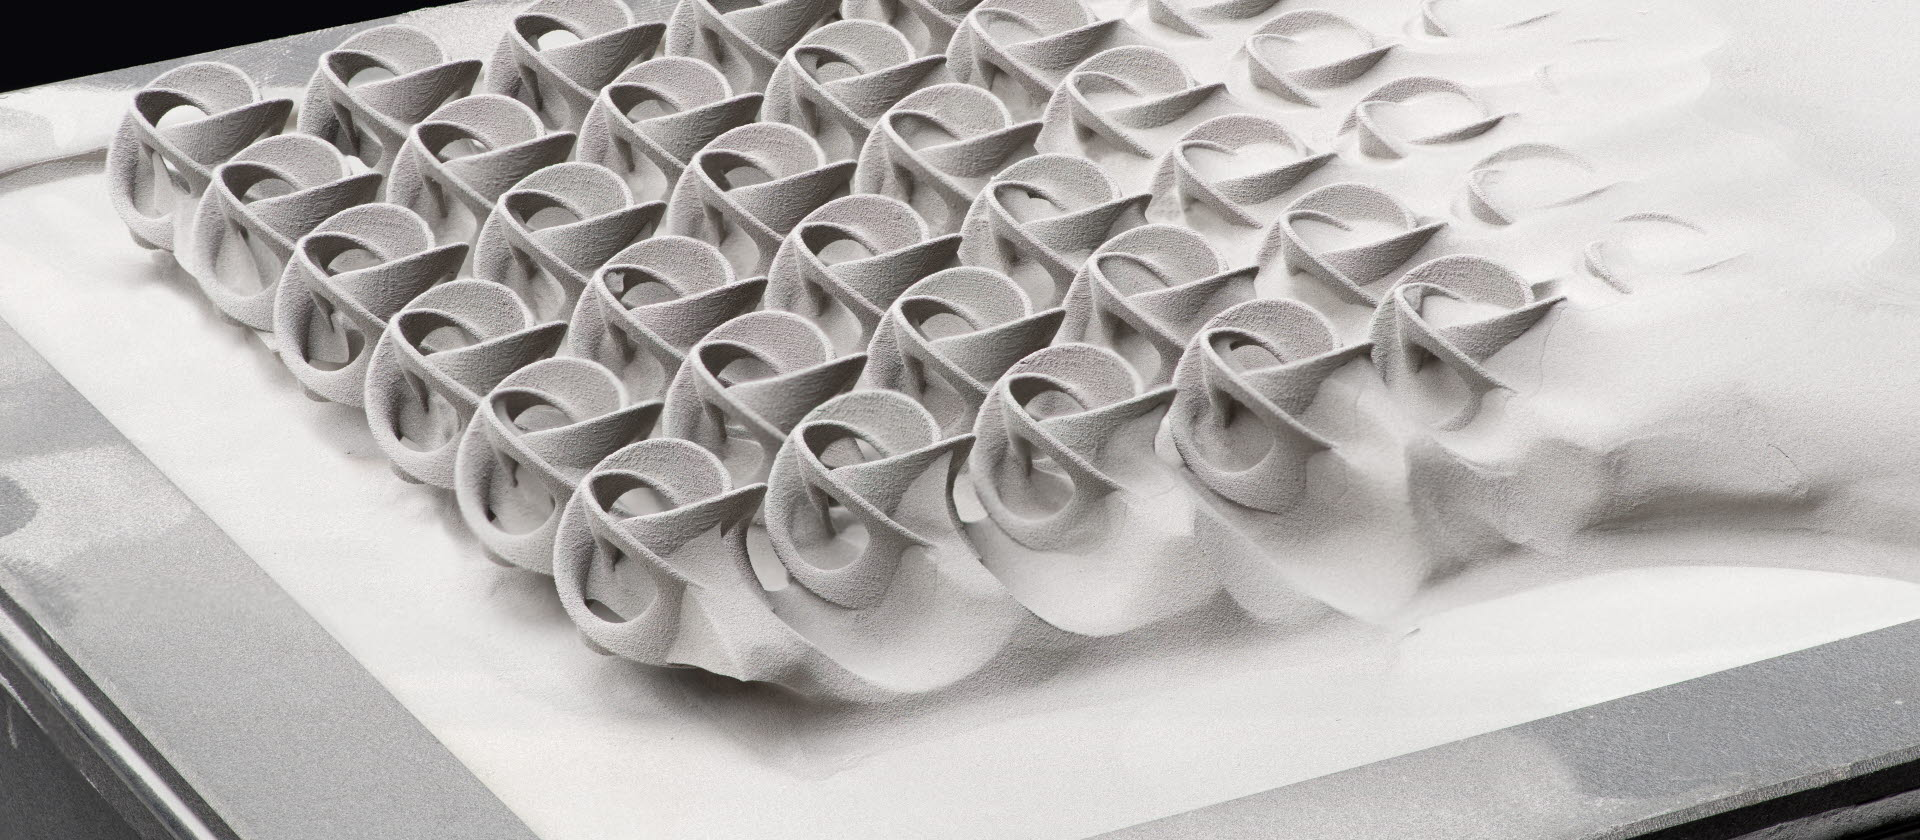 Additive manufacturing powders